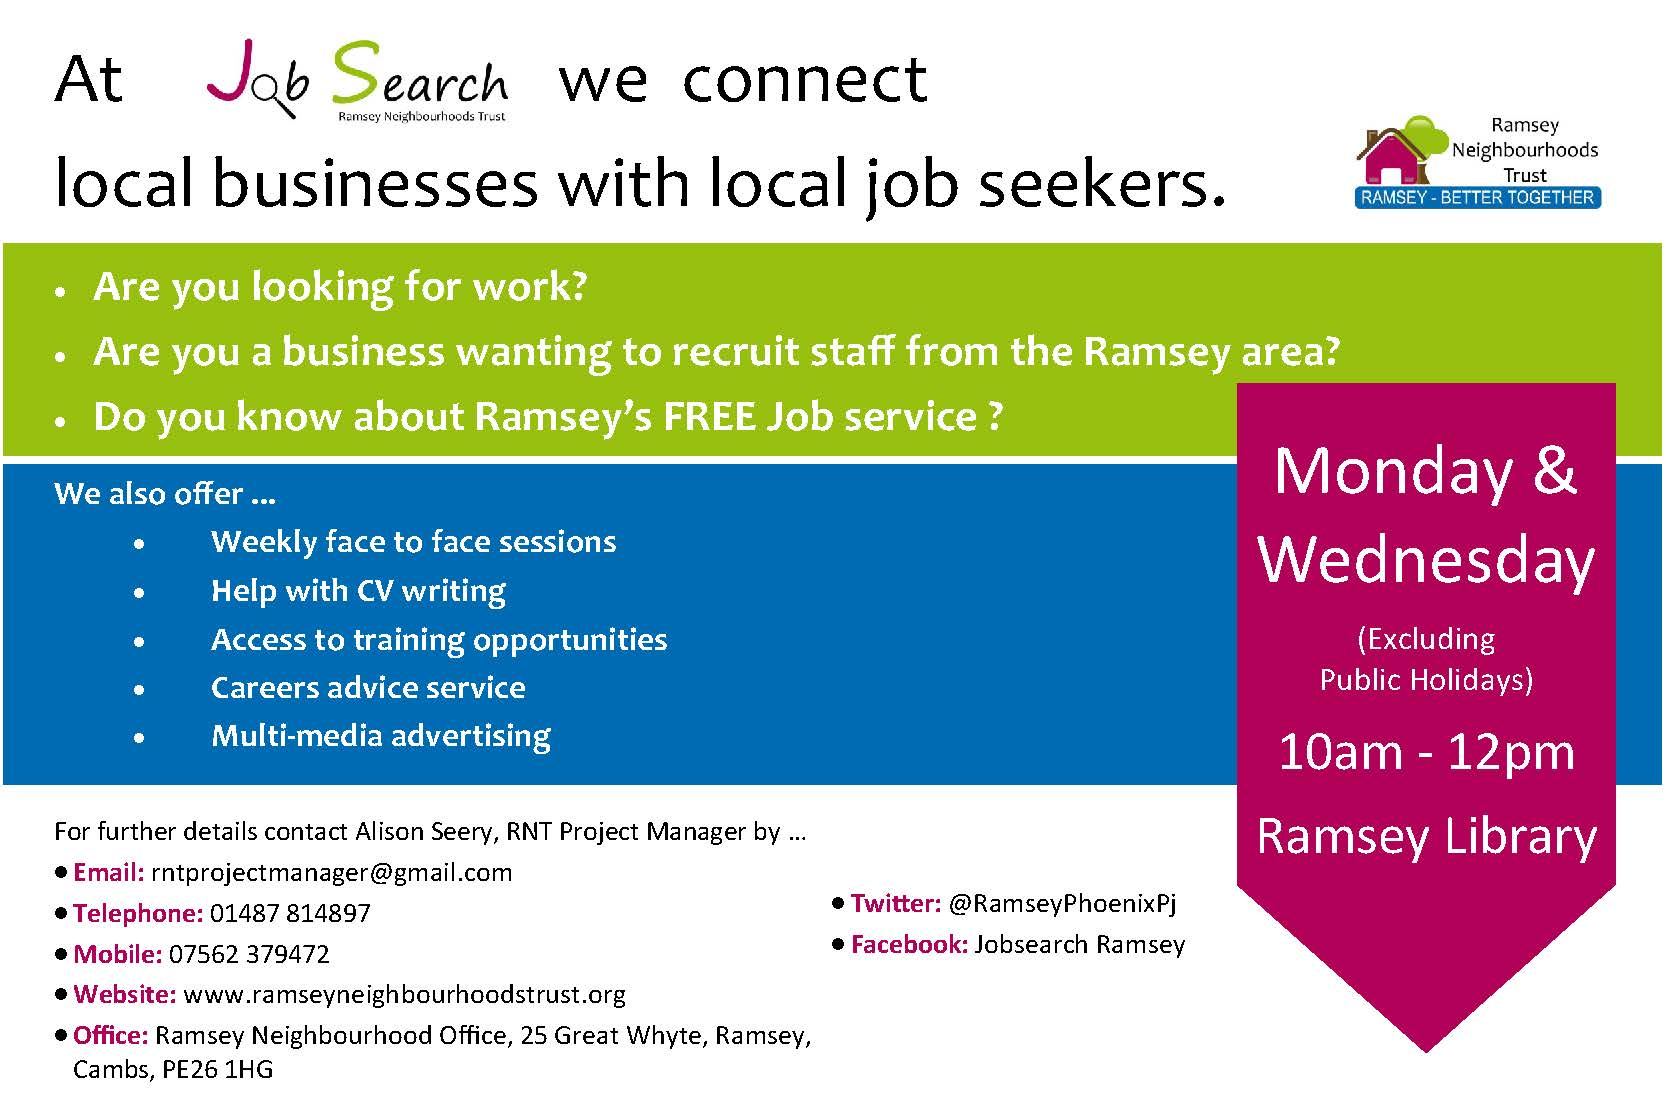 phoenix job search in ramsey - Find Local Jobs Using Local Job Search Sites